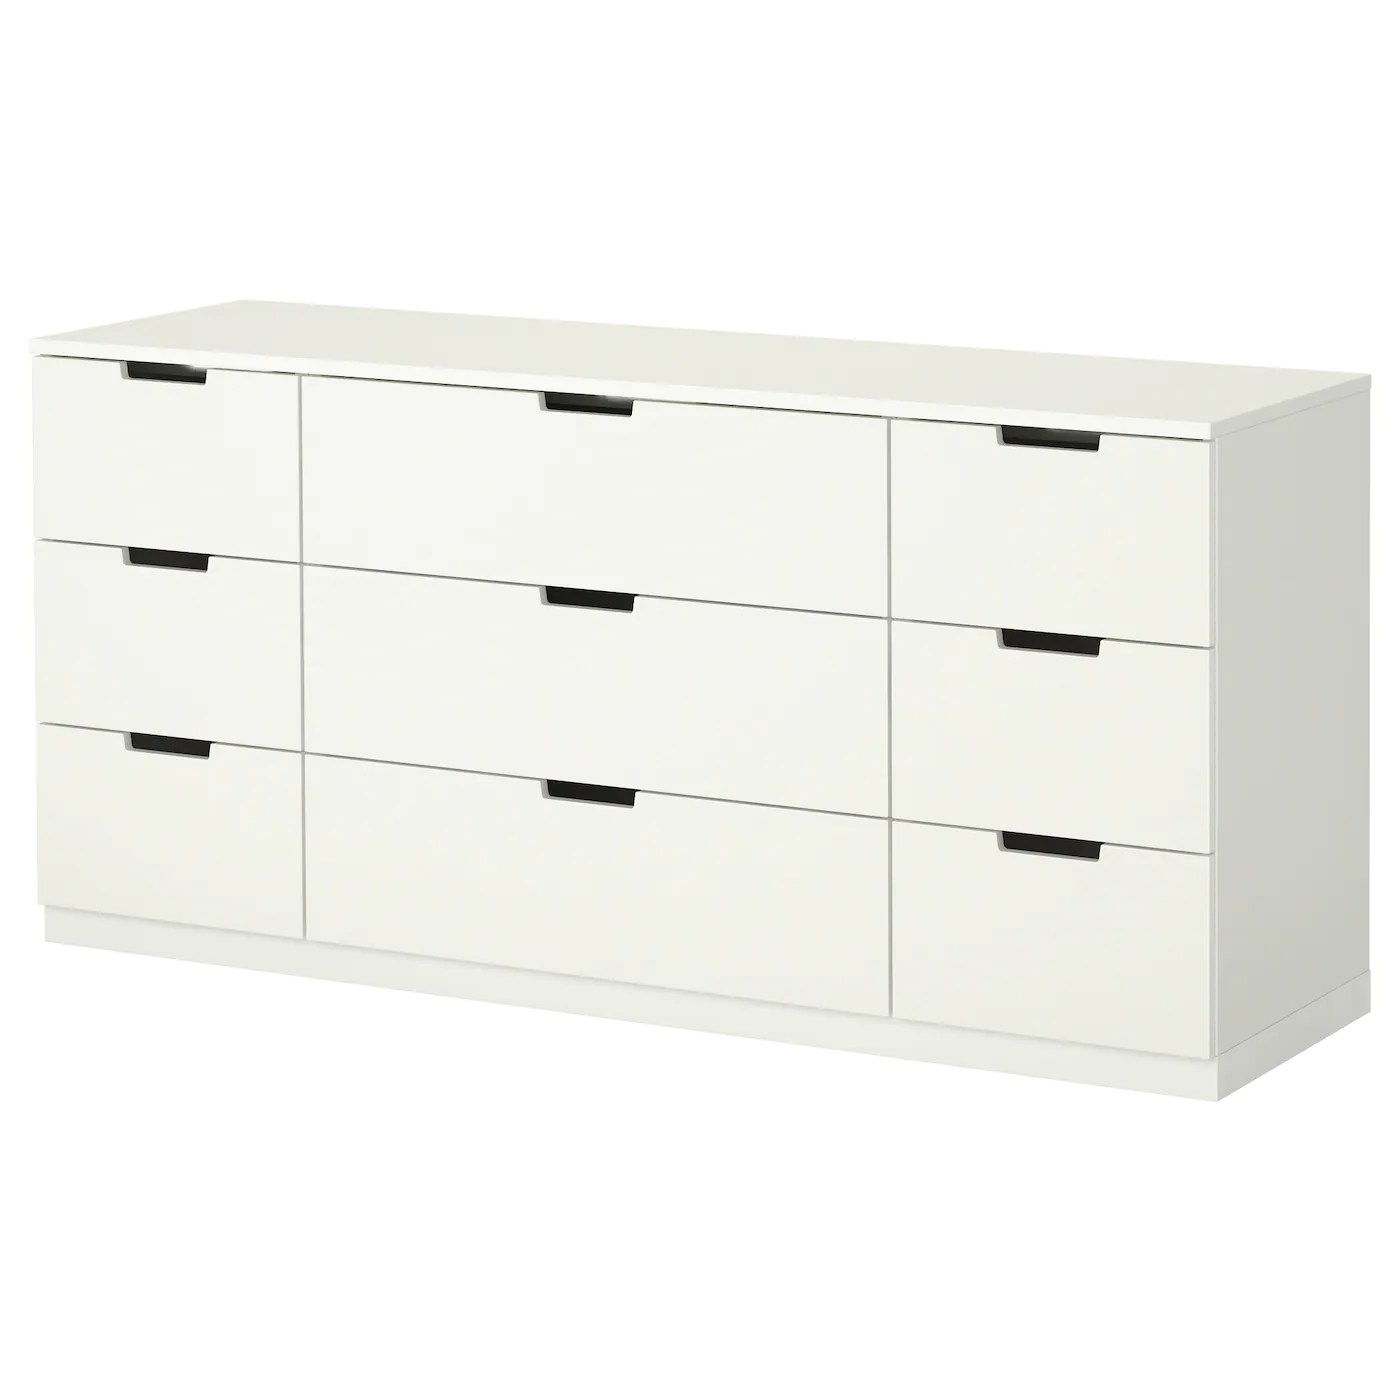 Shallow Drawer Dresser Ikea